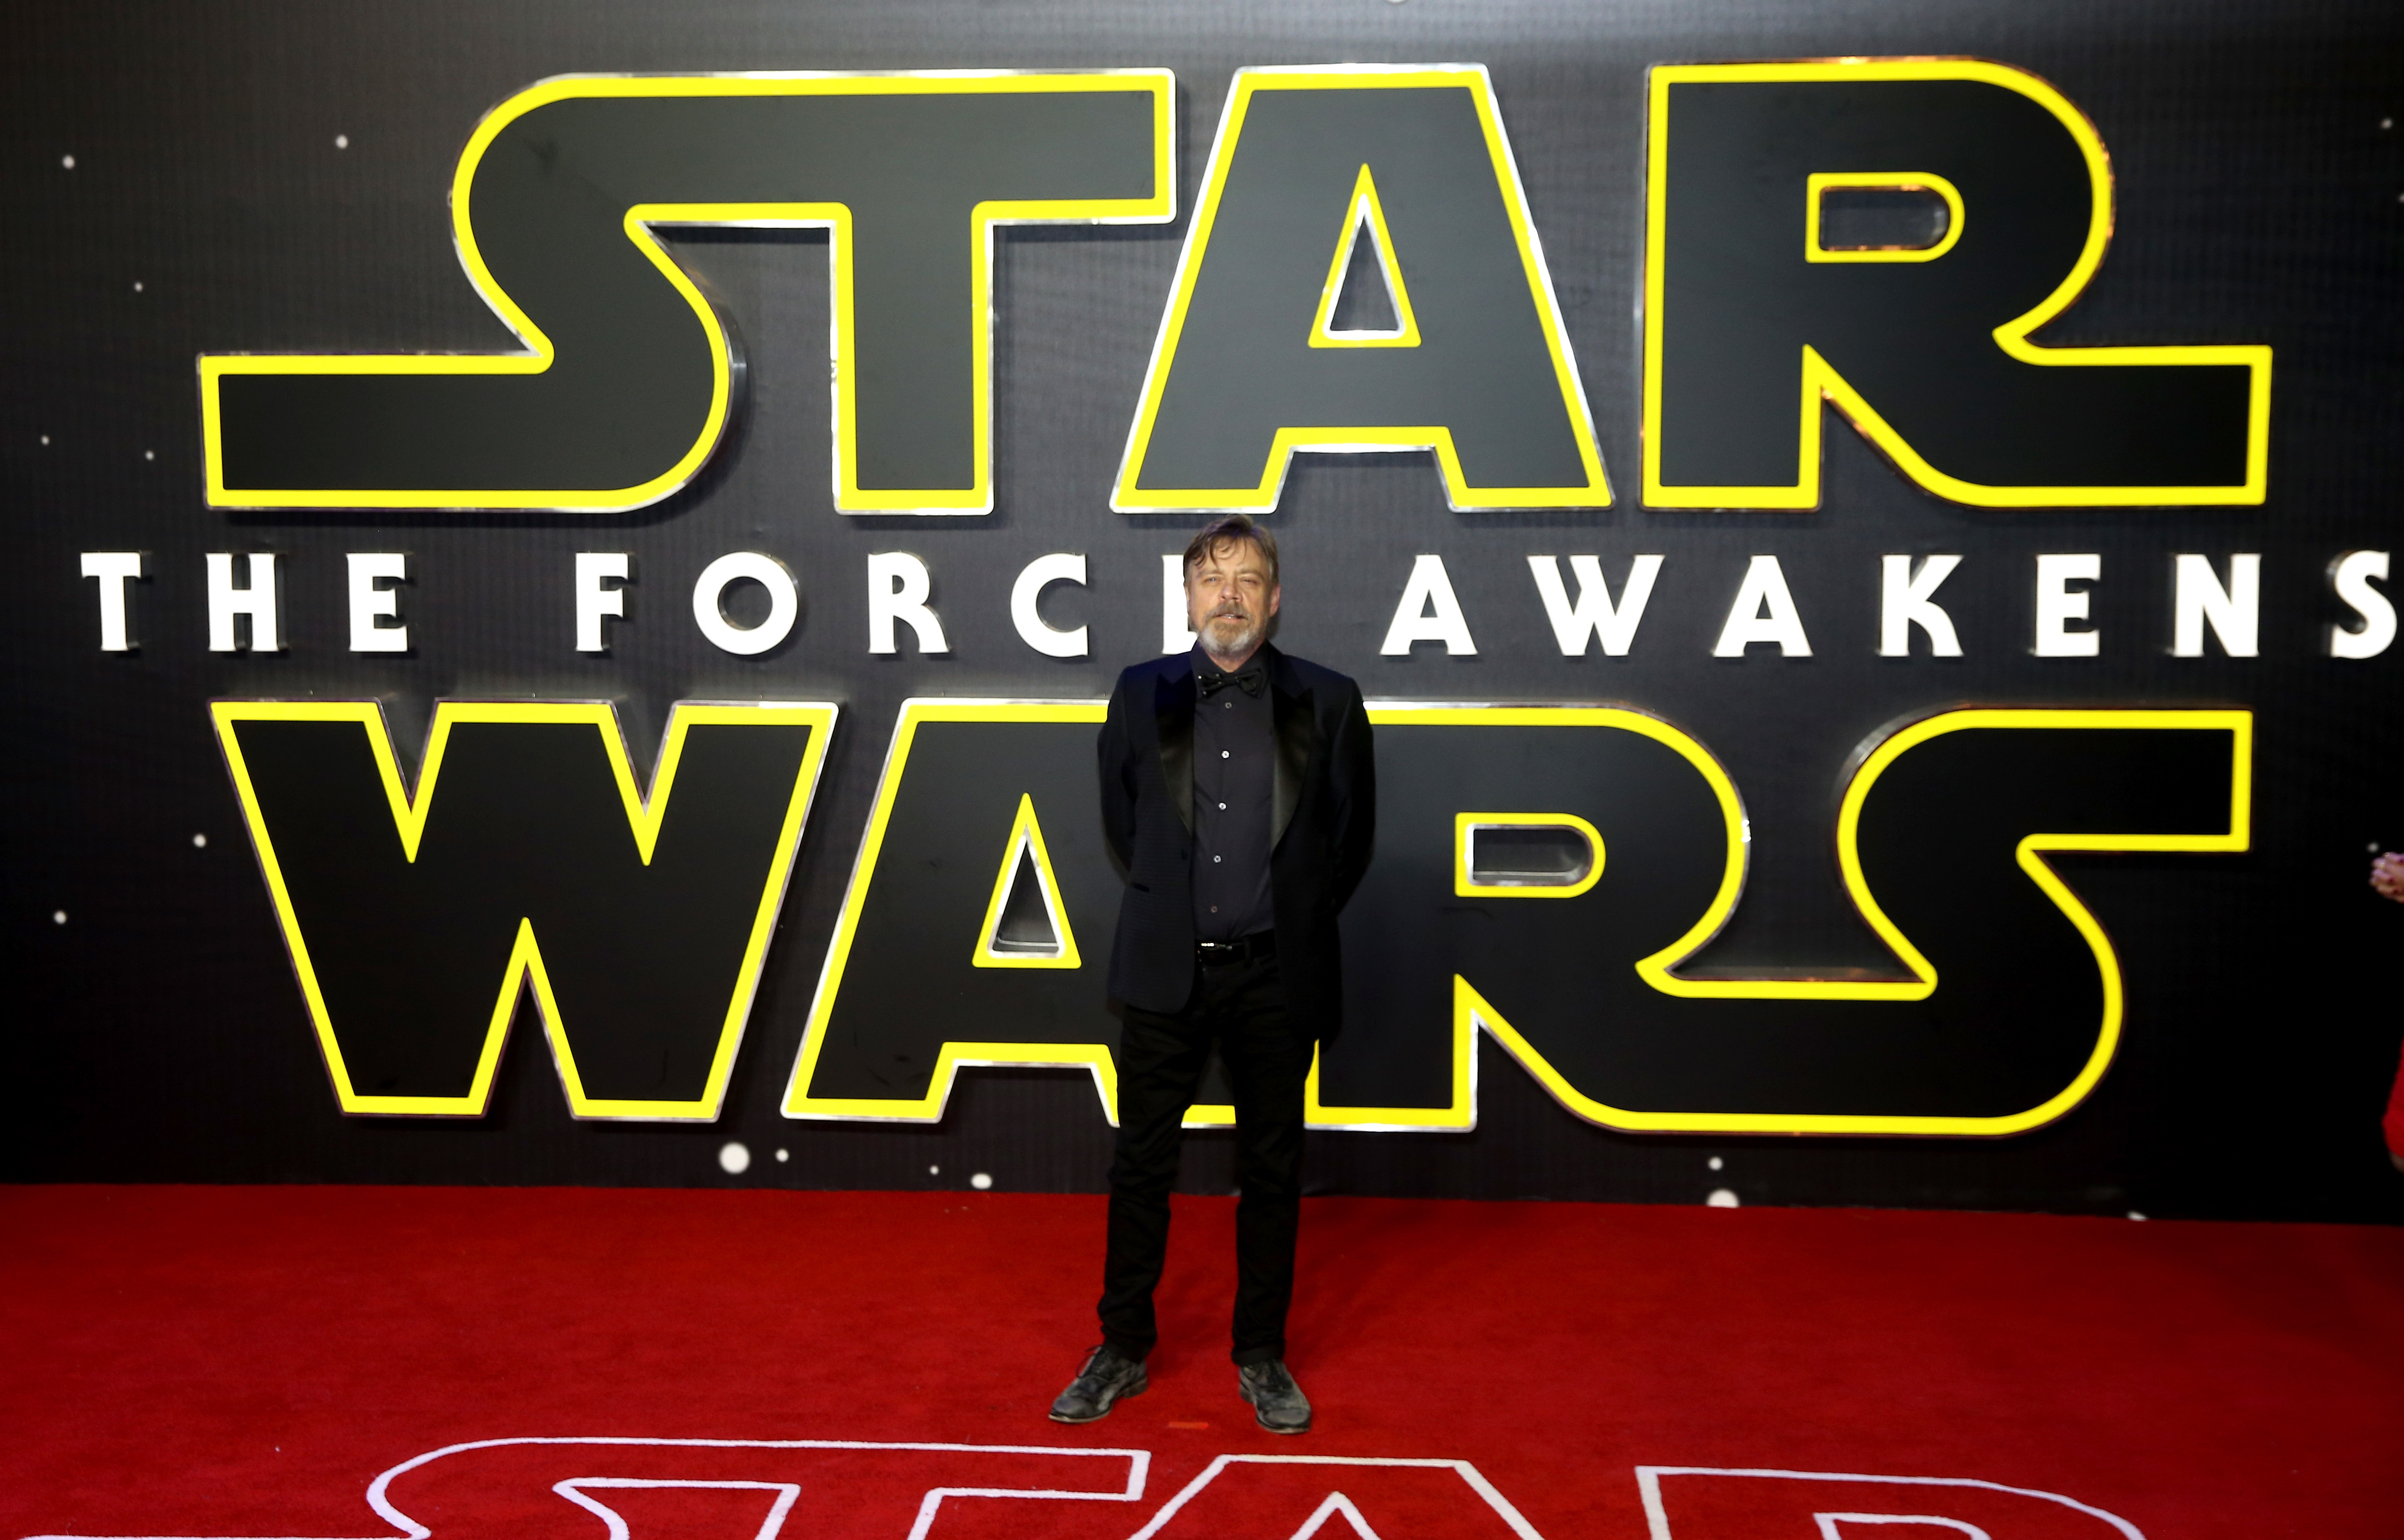 Mark Hamill attends the European Premiere of 'Star Wars: The Force Awakens' at Leicester Square on December 16, 2015 in London, England.